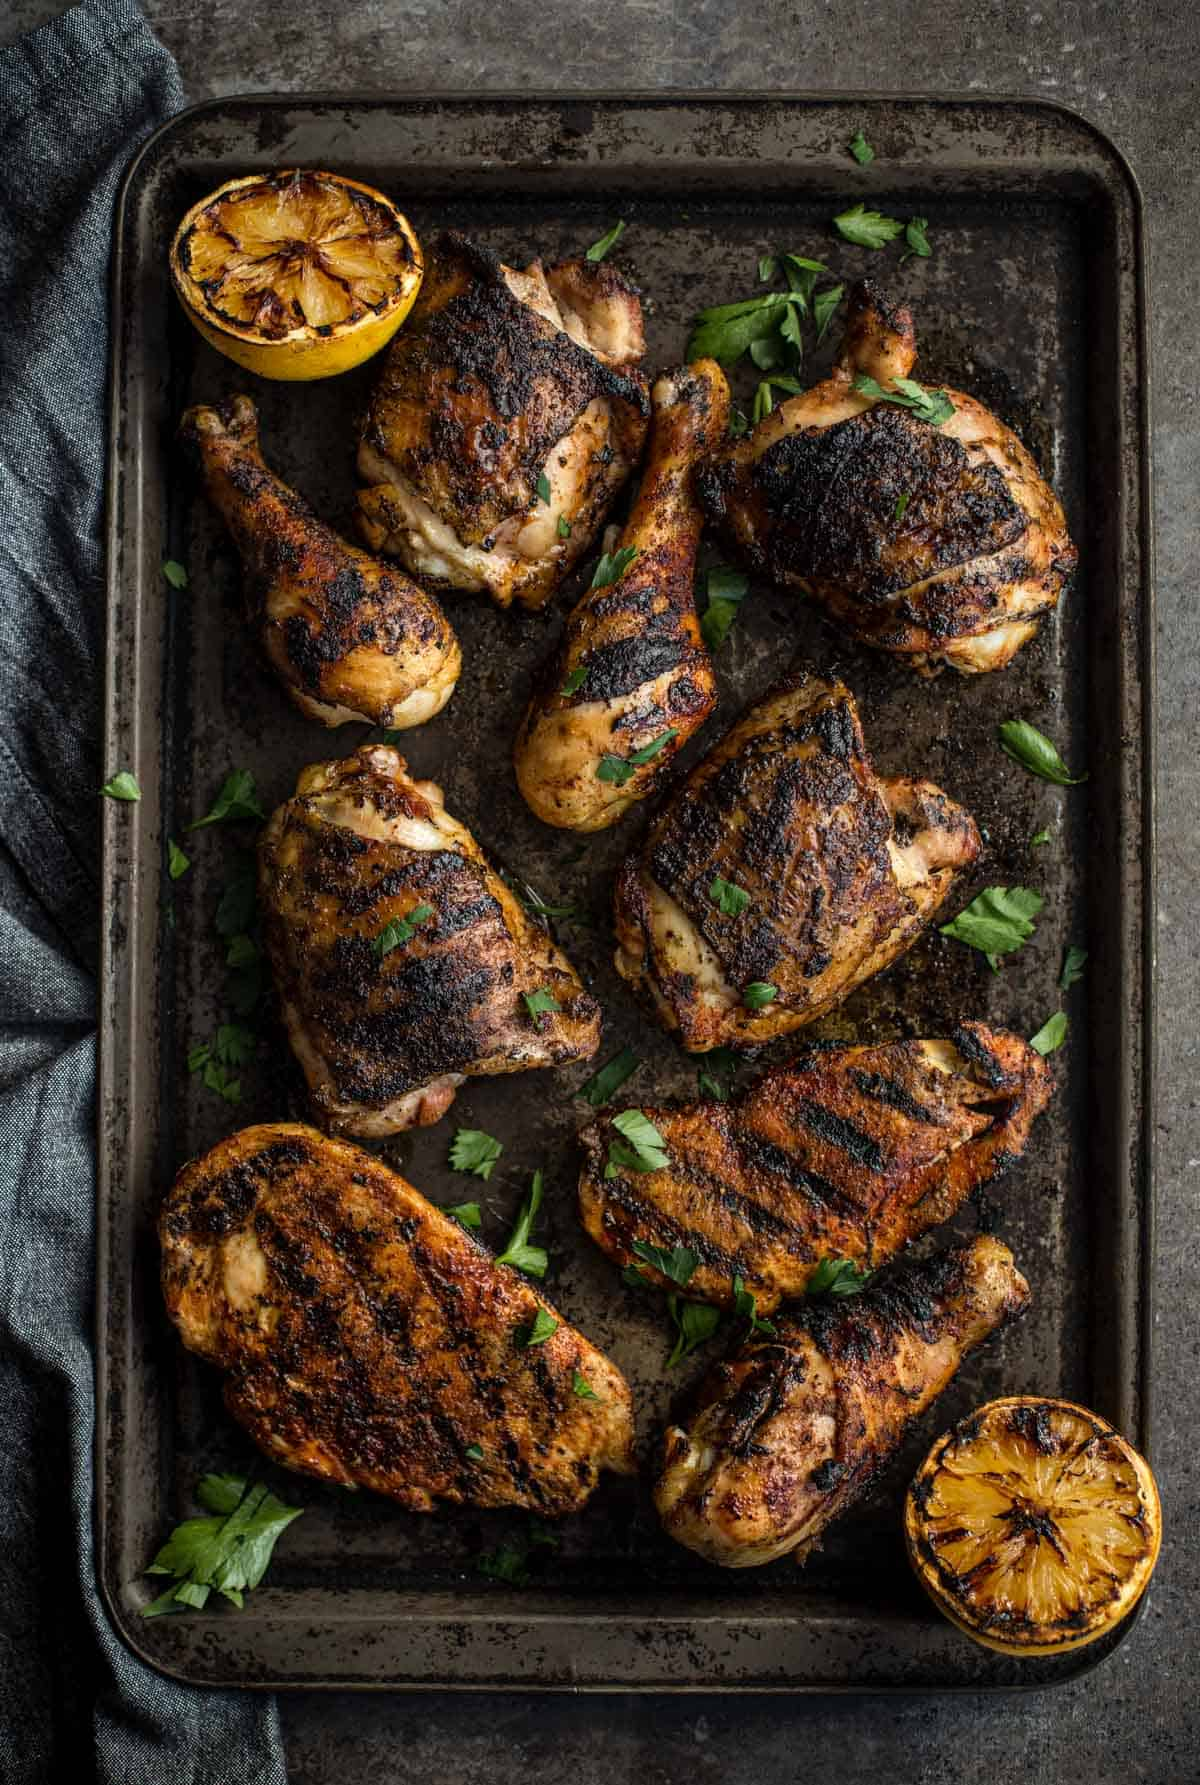 Grilled Jerk Chicken pieces on a sheet-pan